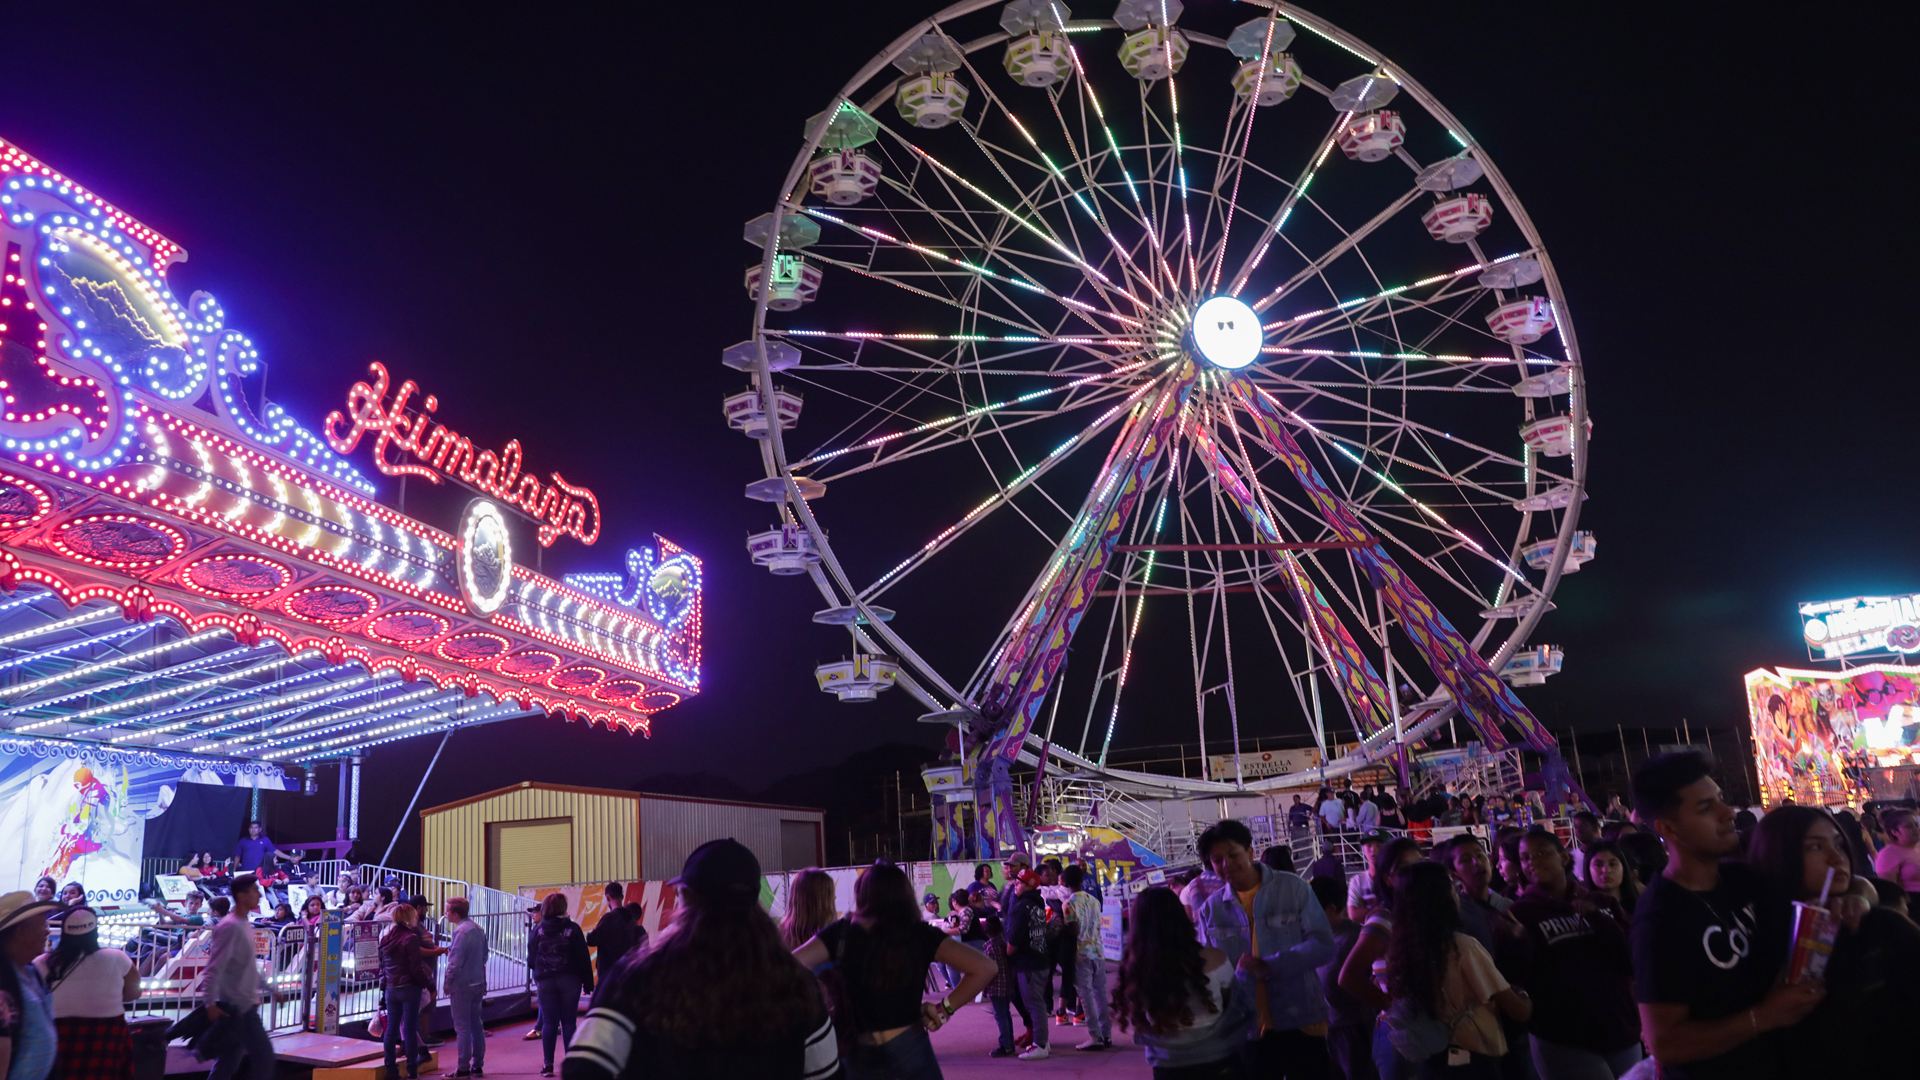 SoCalFair-events-carousel1